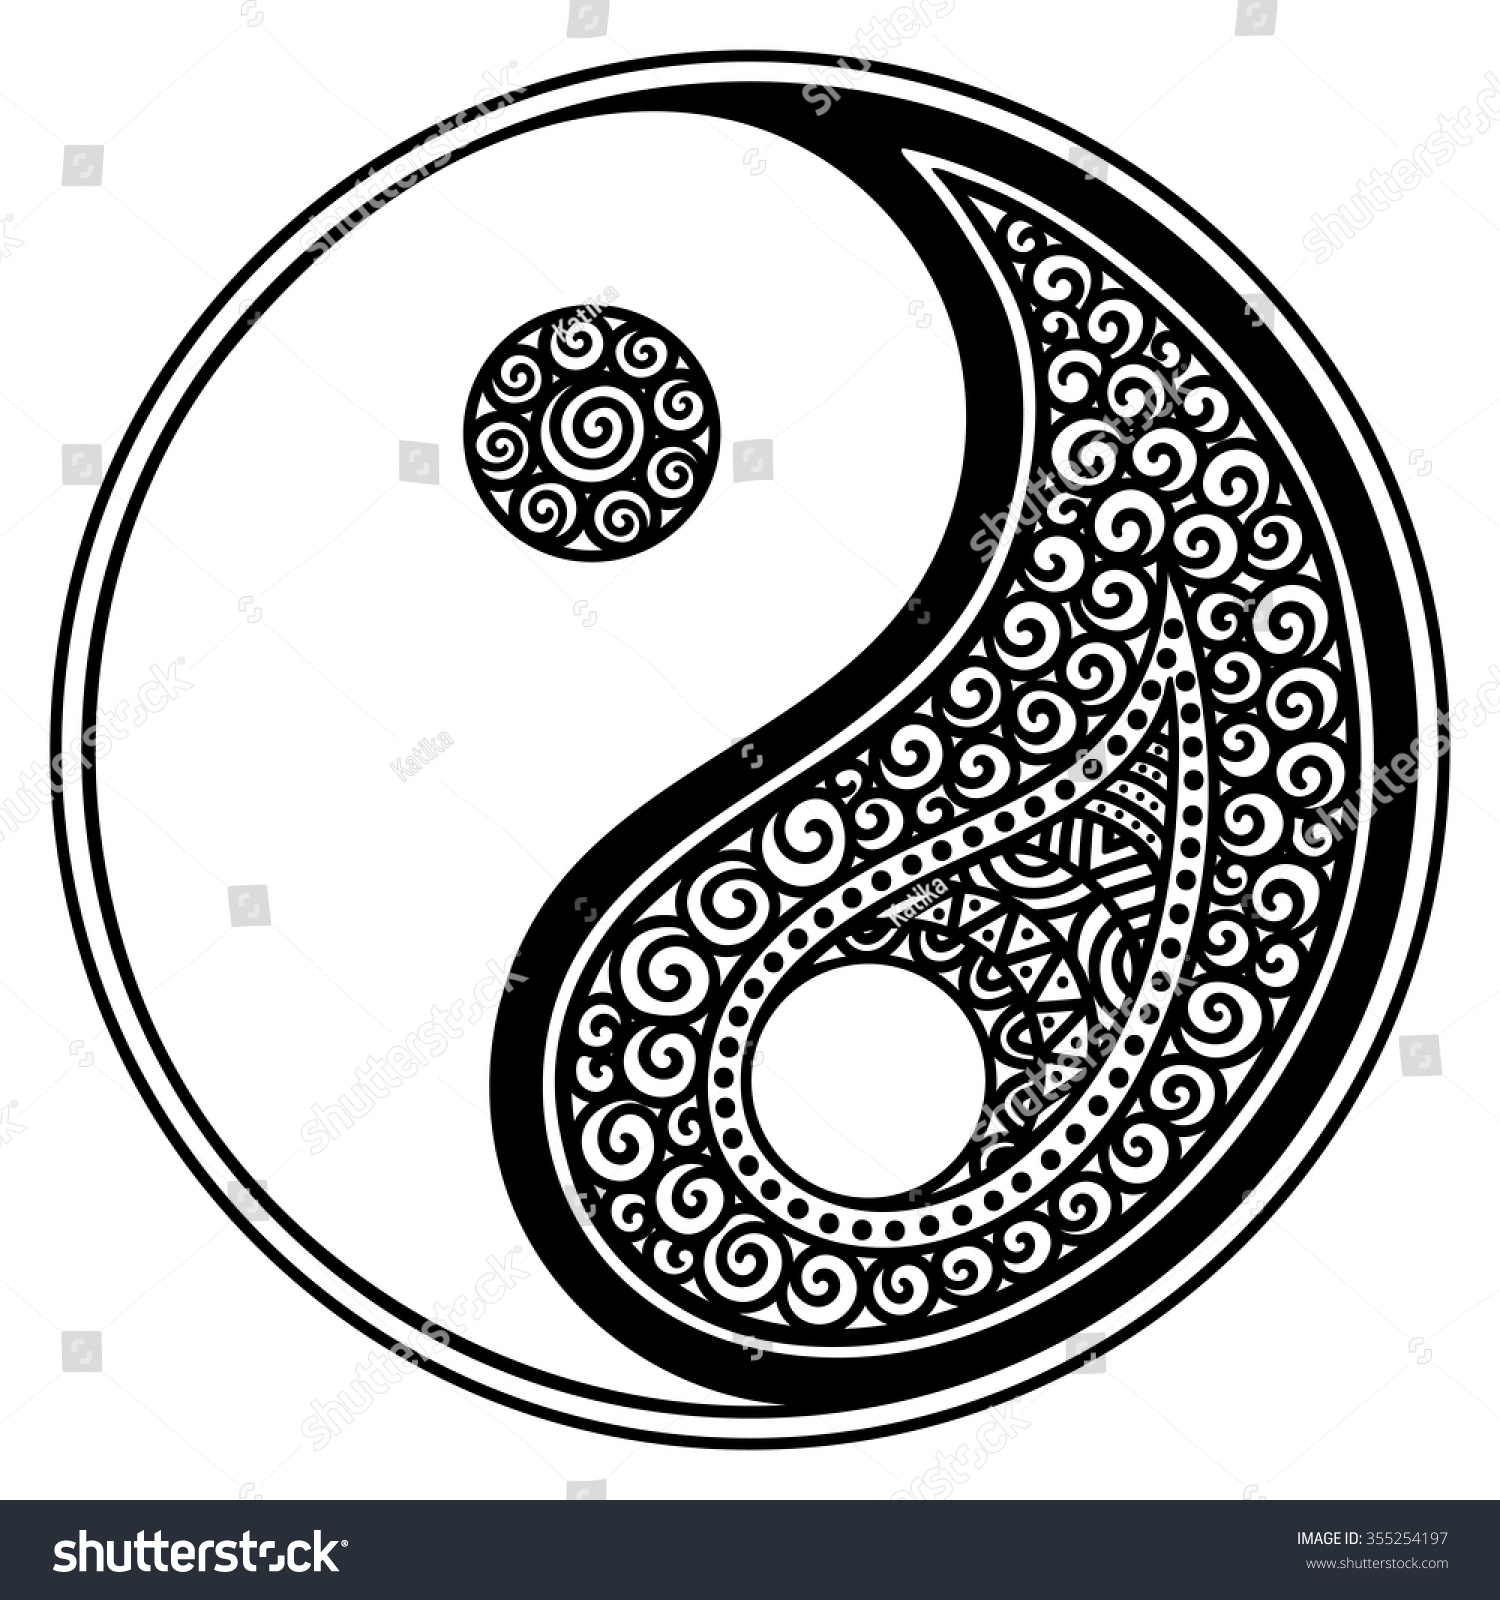 Yin,yang decorative symbol. Hand drawn vintage style design element.